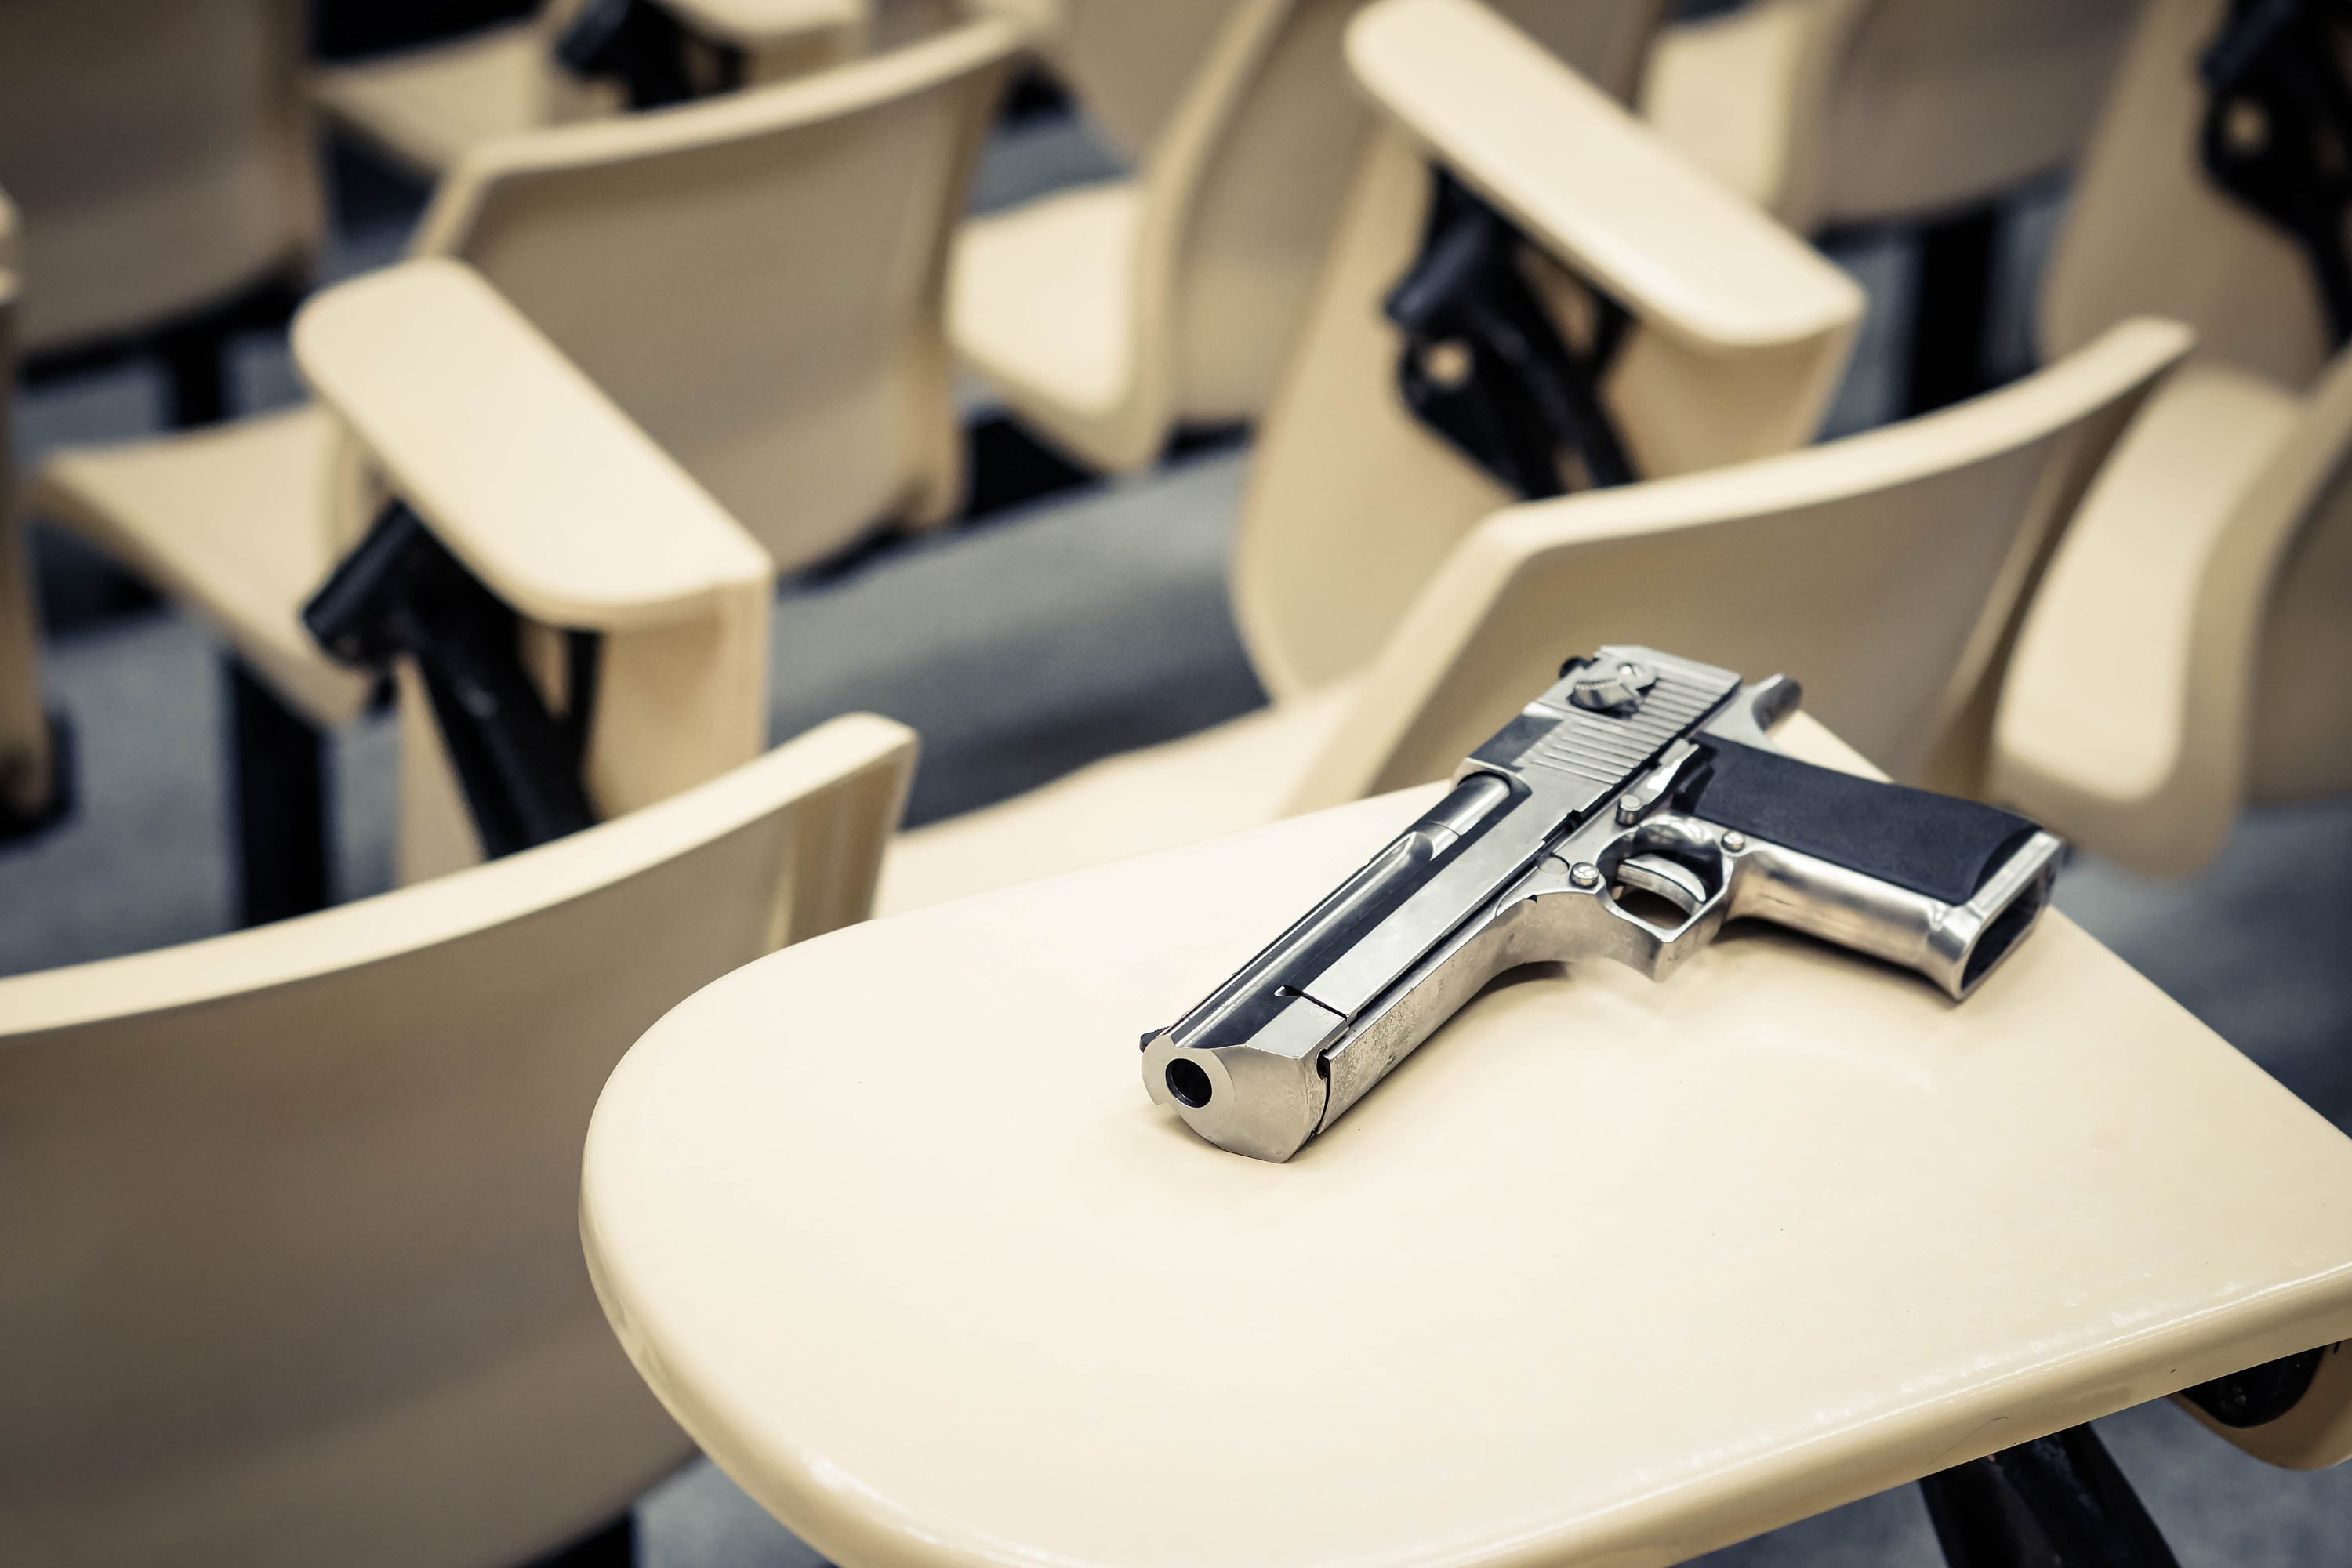 Florida Senate passes bill allowing some teachers to carry guns in schools restricting purchases